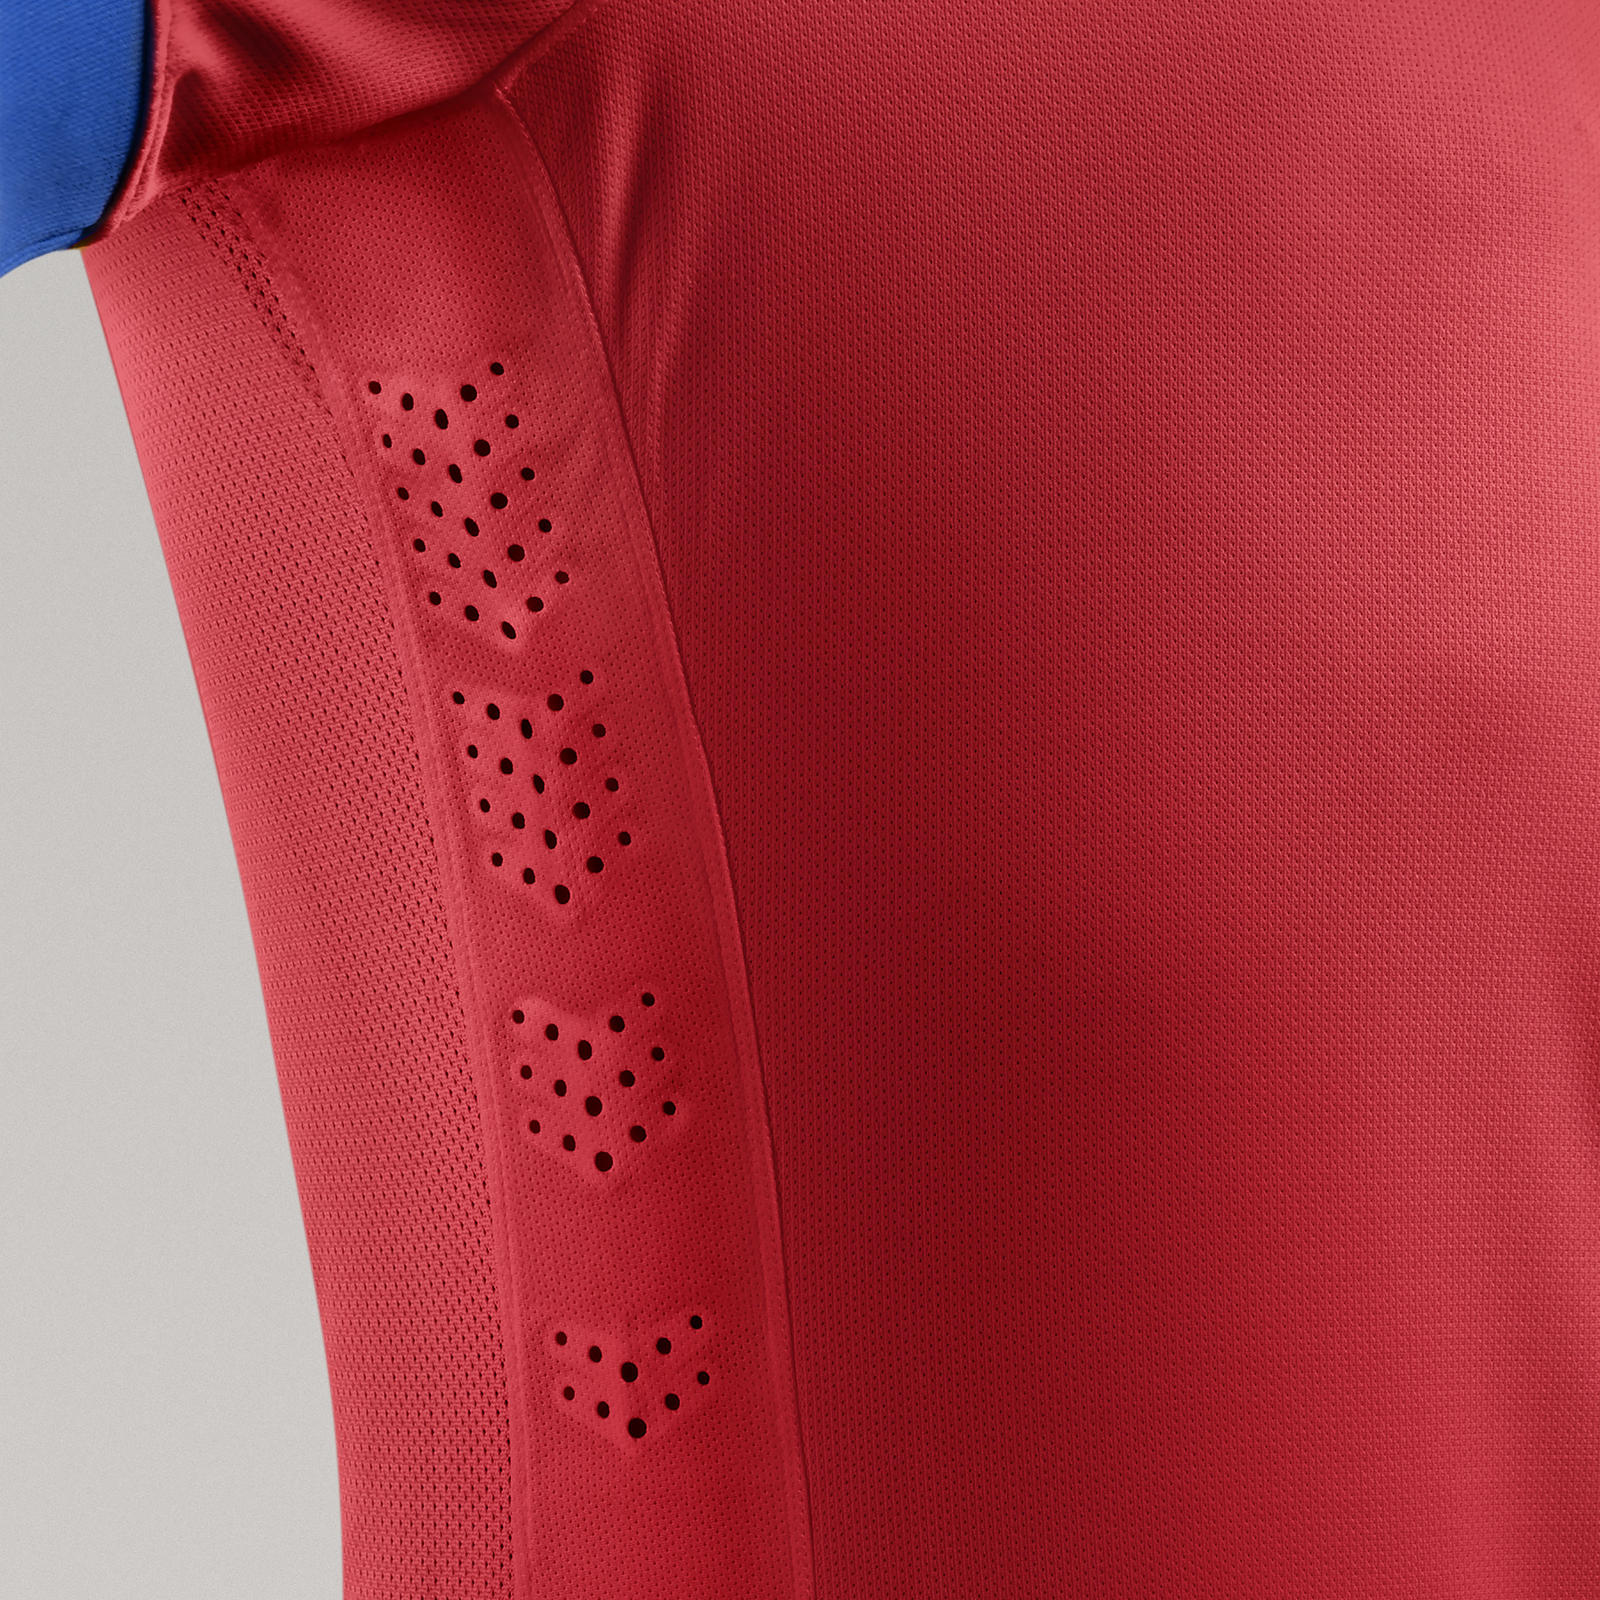 Nike Partners with the Chile Football Federation - Nike News 38234078ebddb